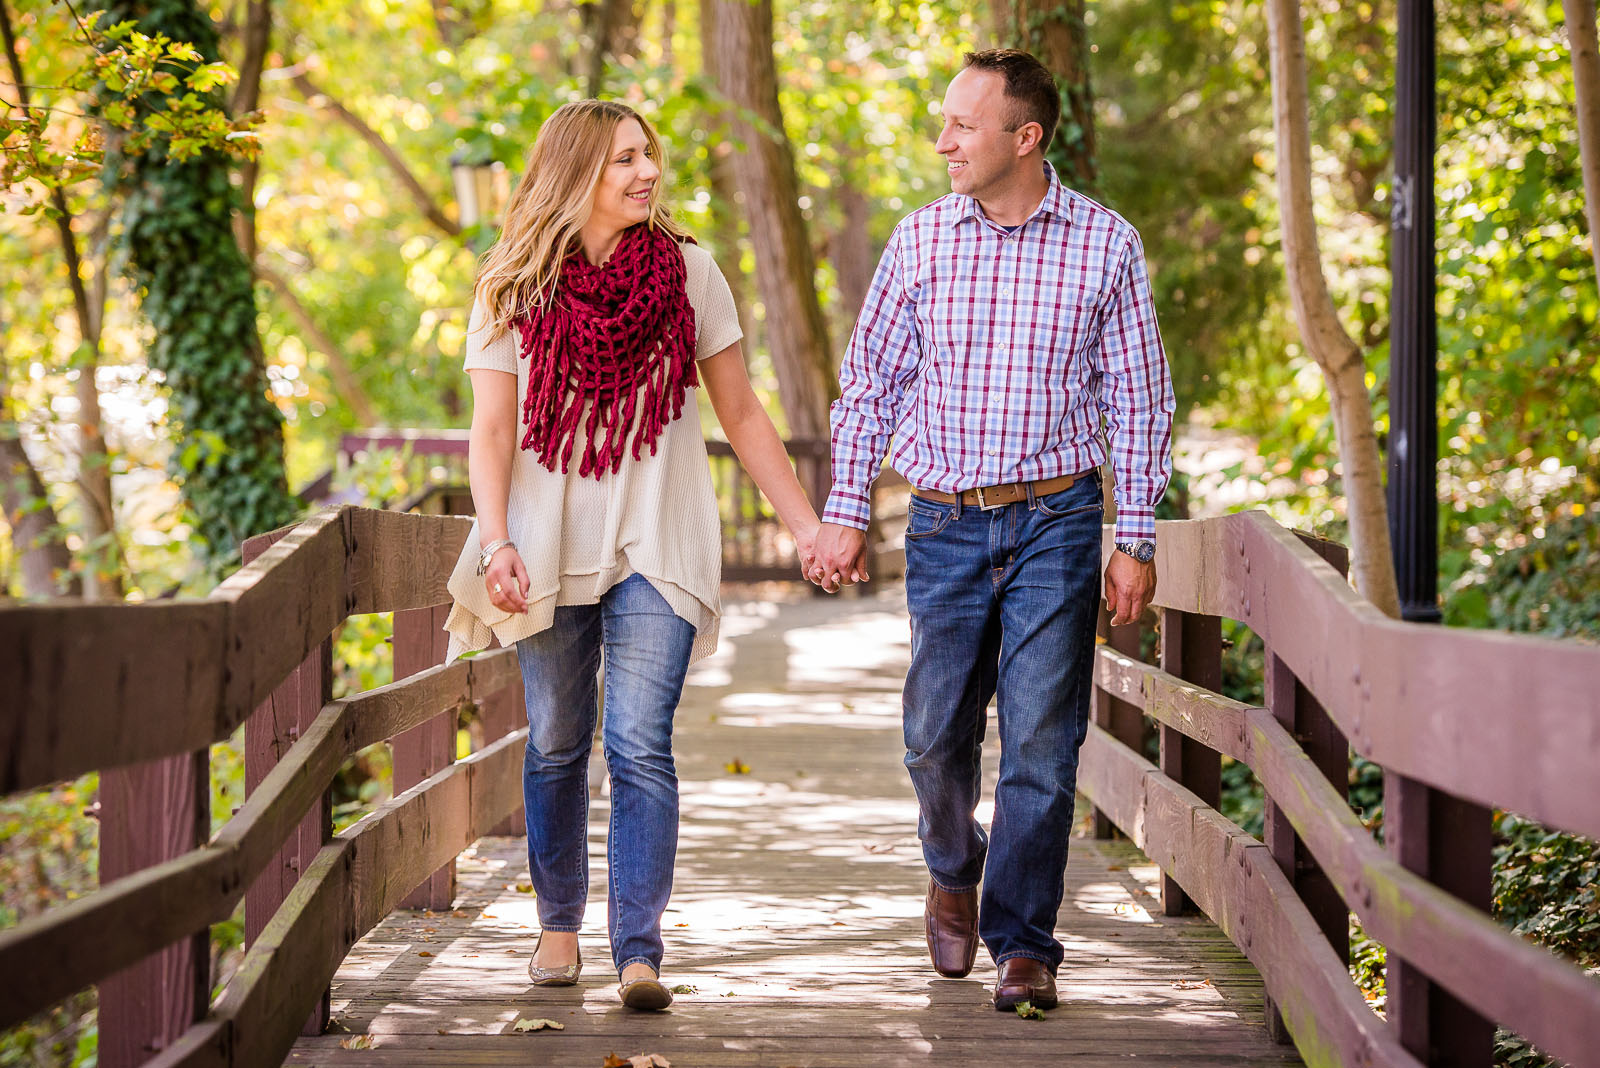 Eric_and_Christy_Photography_Blog_Megan_Nate_Engagement-8